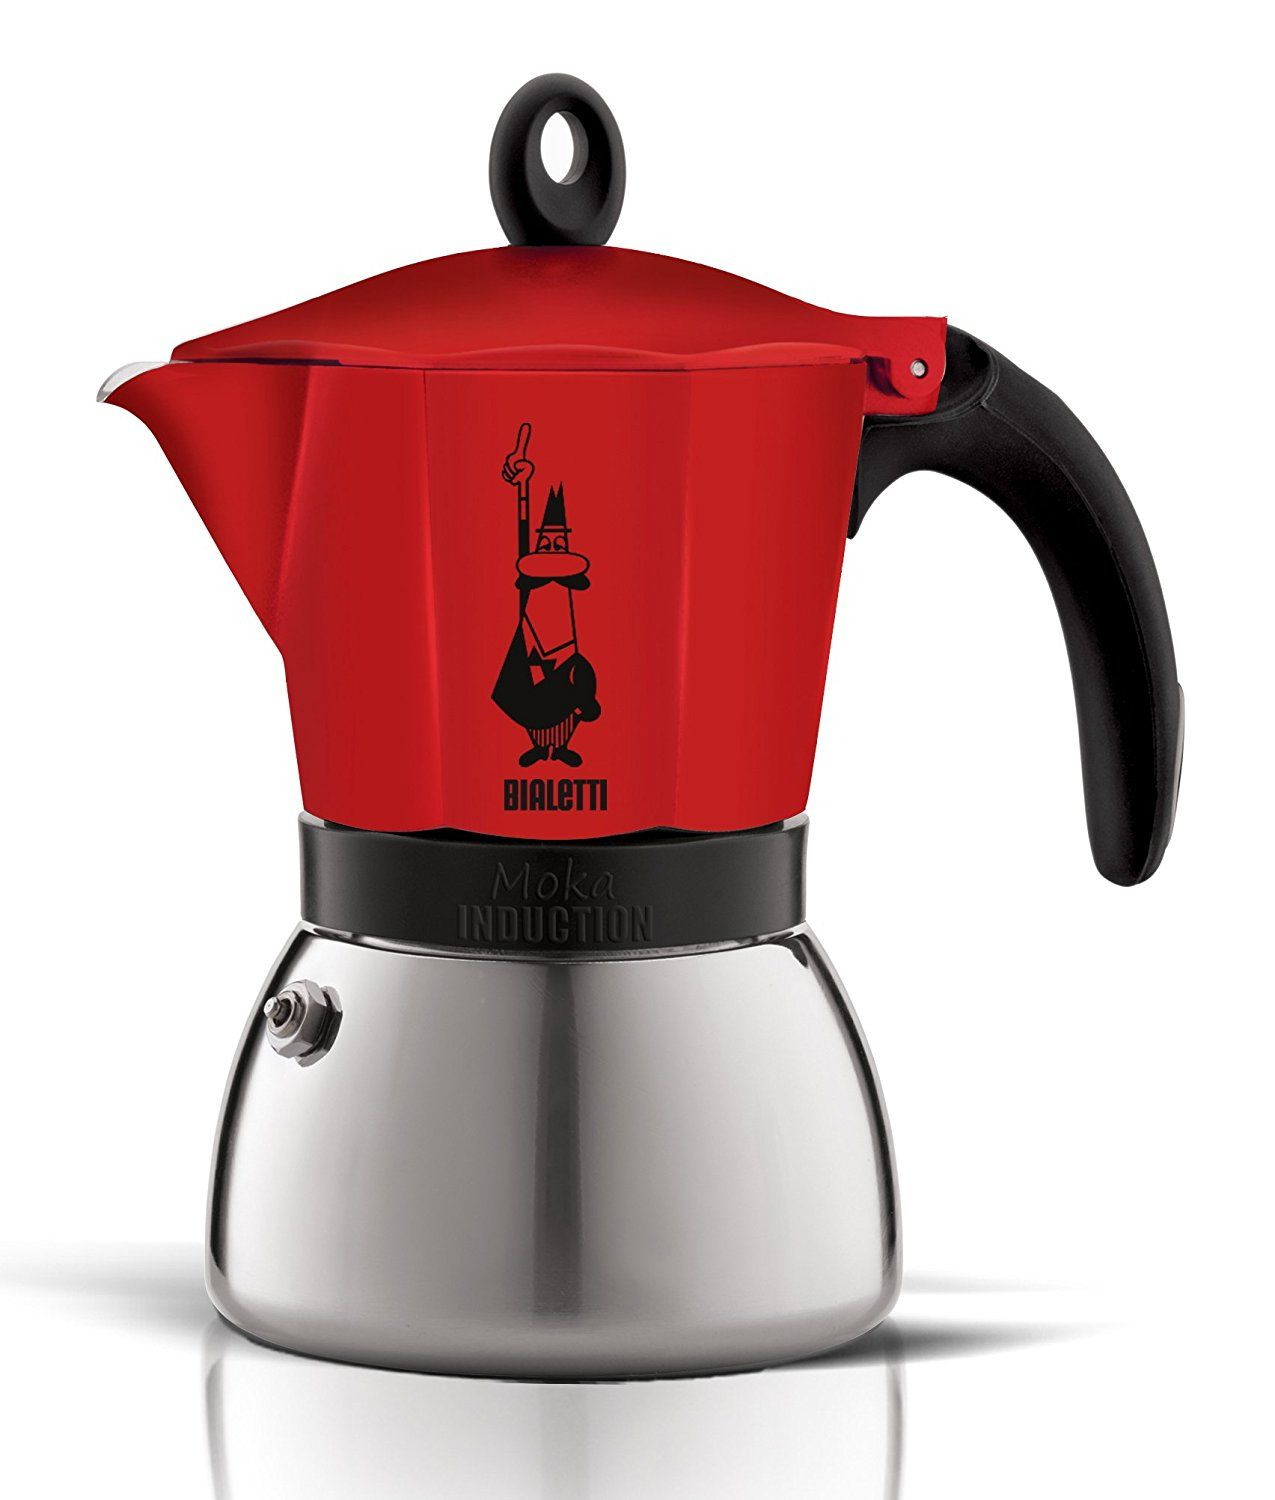 Bialetti Moka Induction Coffee Maker Red 6 Cup Bialetti Home Coffee Machines Coffee Maker